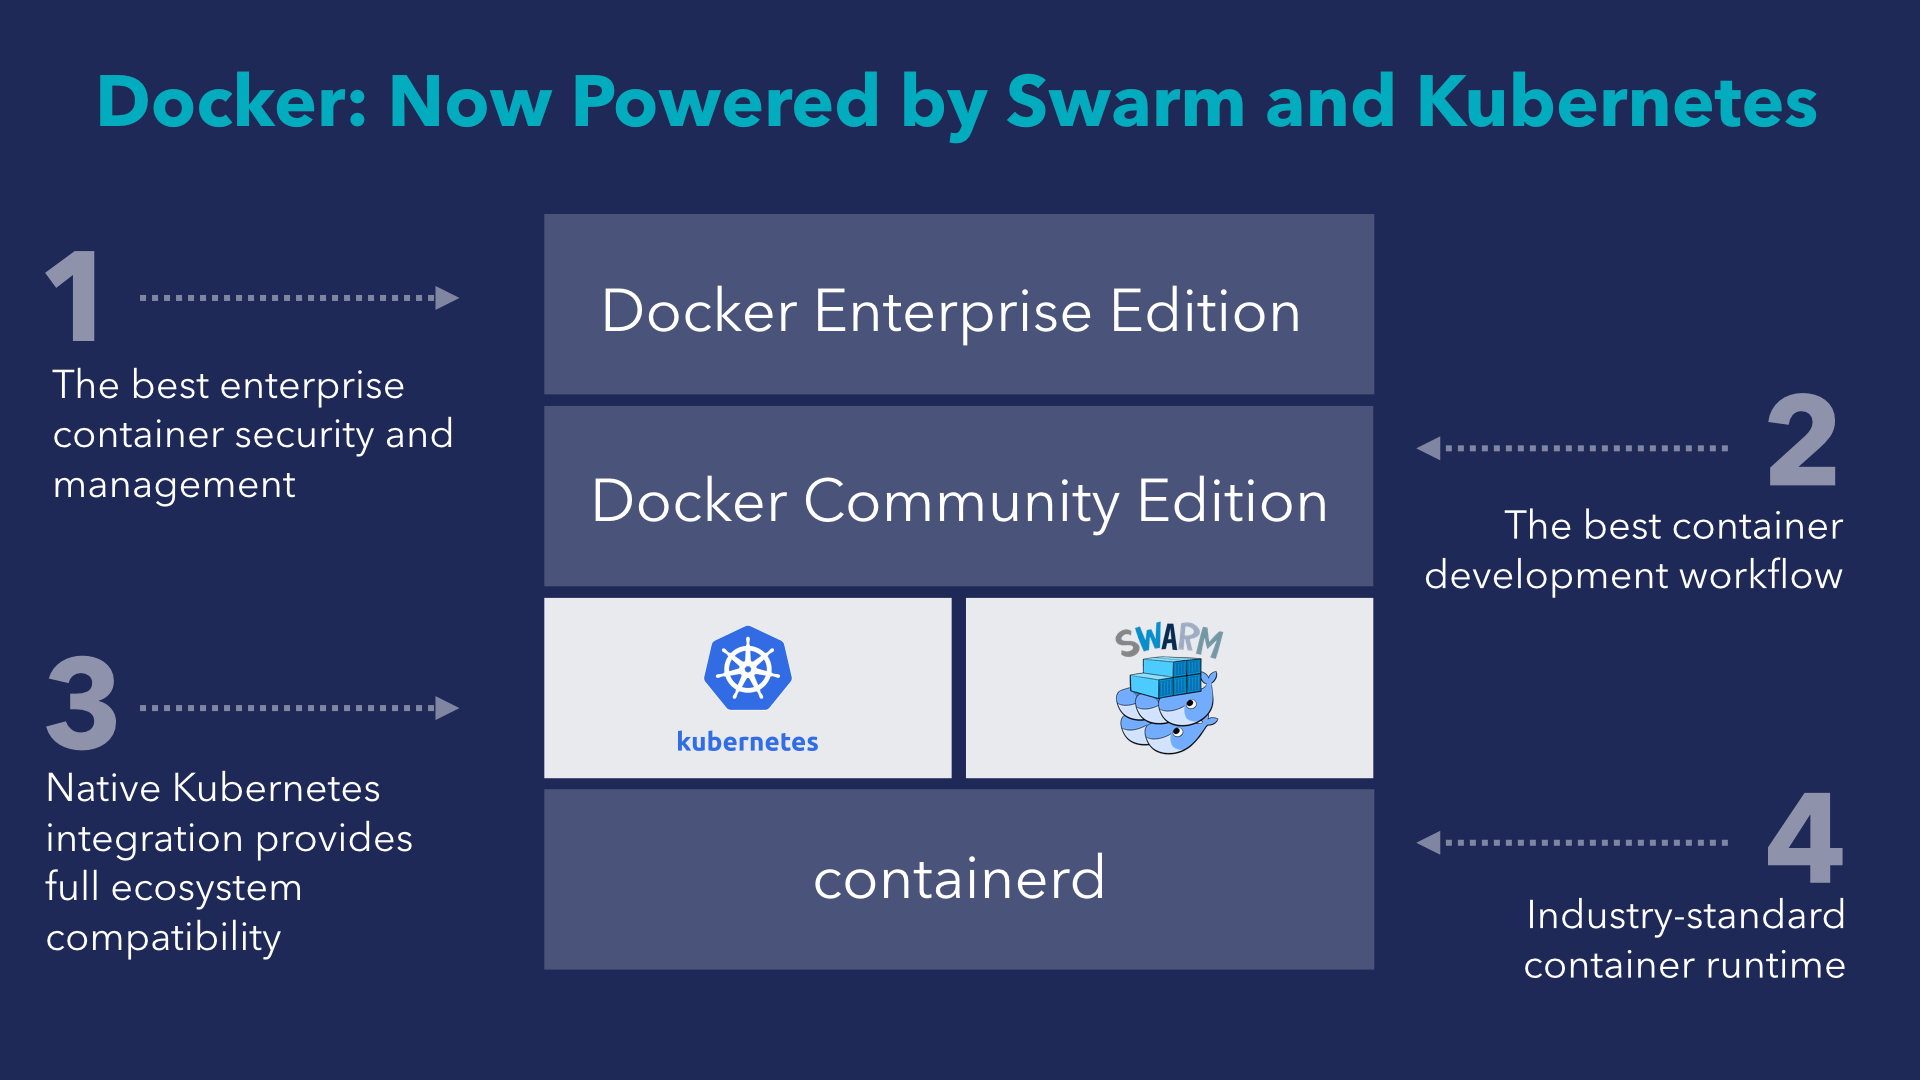 Is Swarm Dead? Answered by a Docker Captain